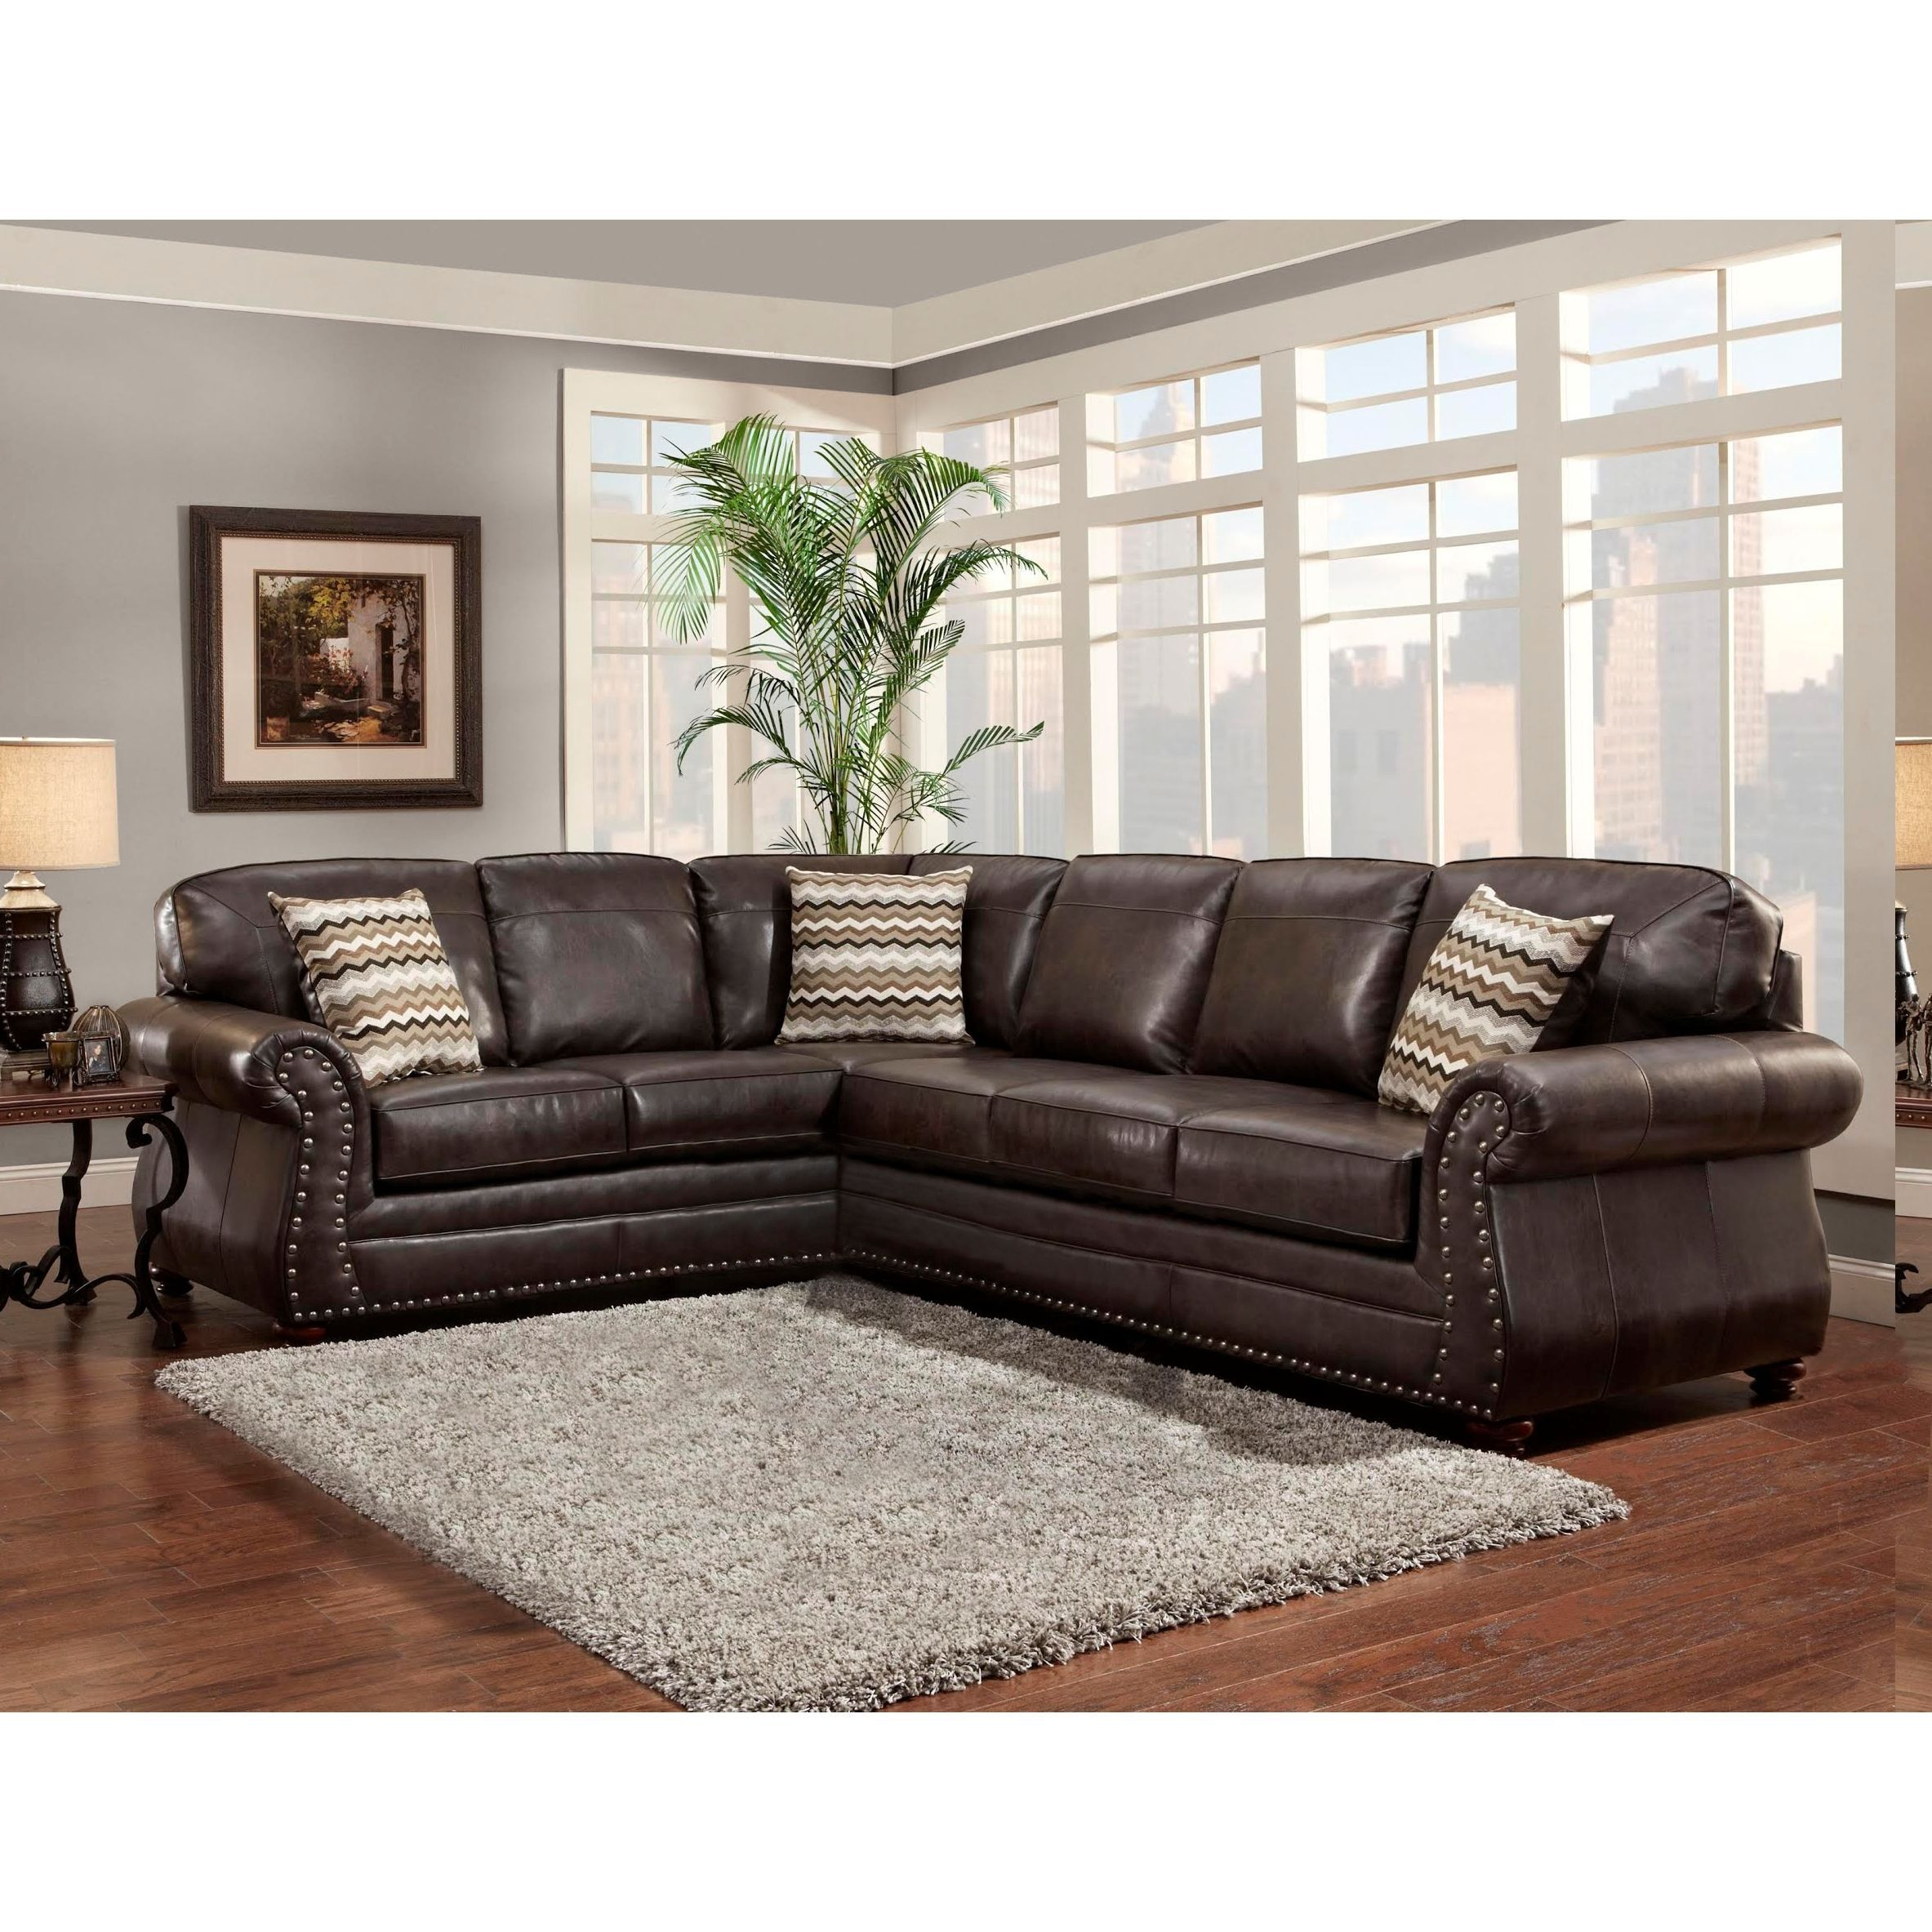 Klassische Sofas You Can Assemble Sofa Trendz Bindy Saddle Faux Leather Sectional Sectional